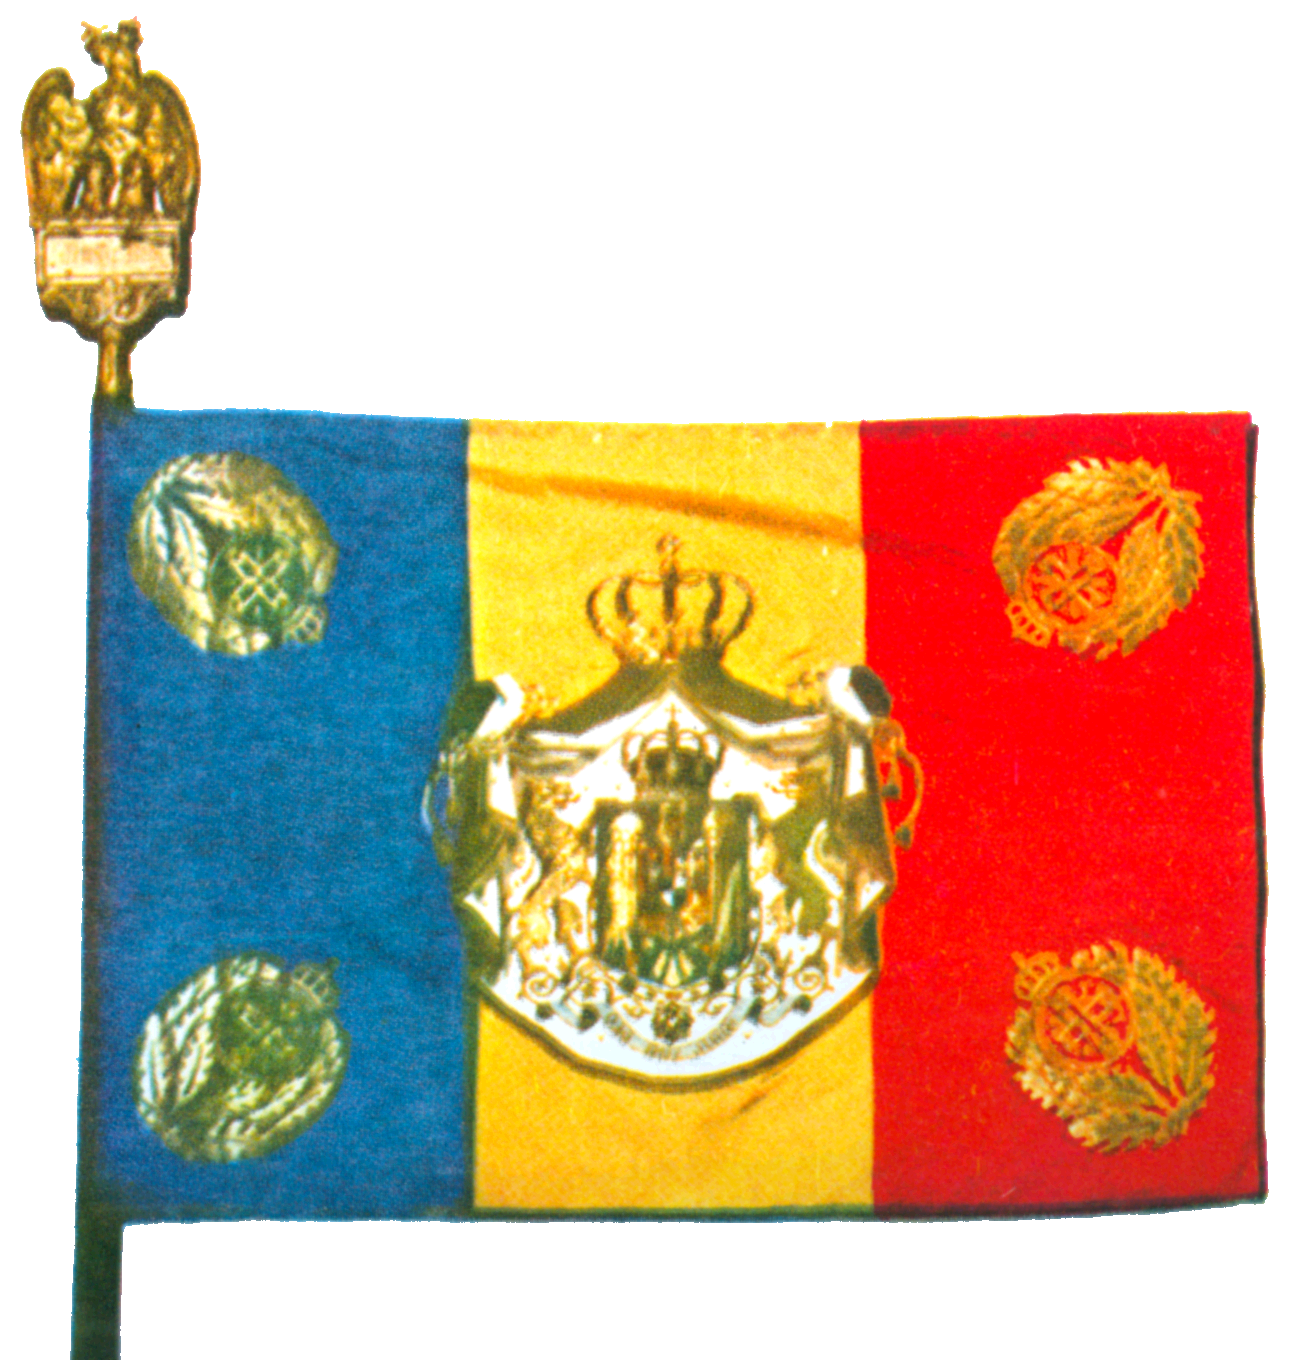 http://upload.wikimedia.org/wikipedia/commons/3/39/Romanian_Army_flag_%28WWII%2C_Mihai_I_model%29.png